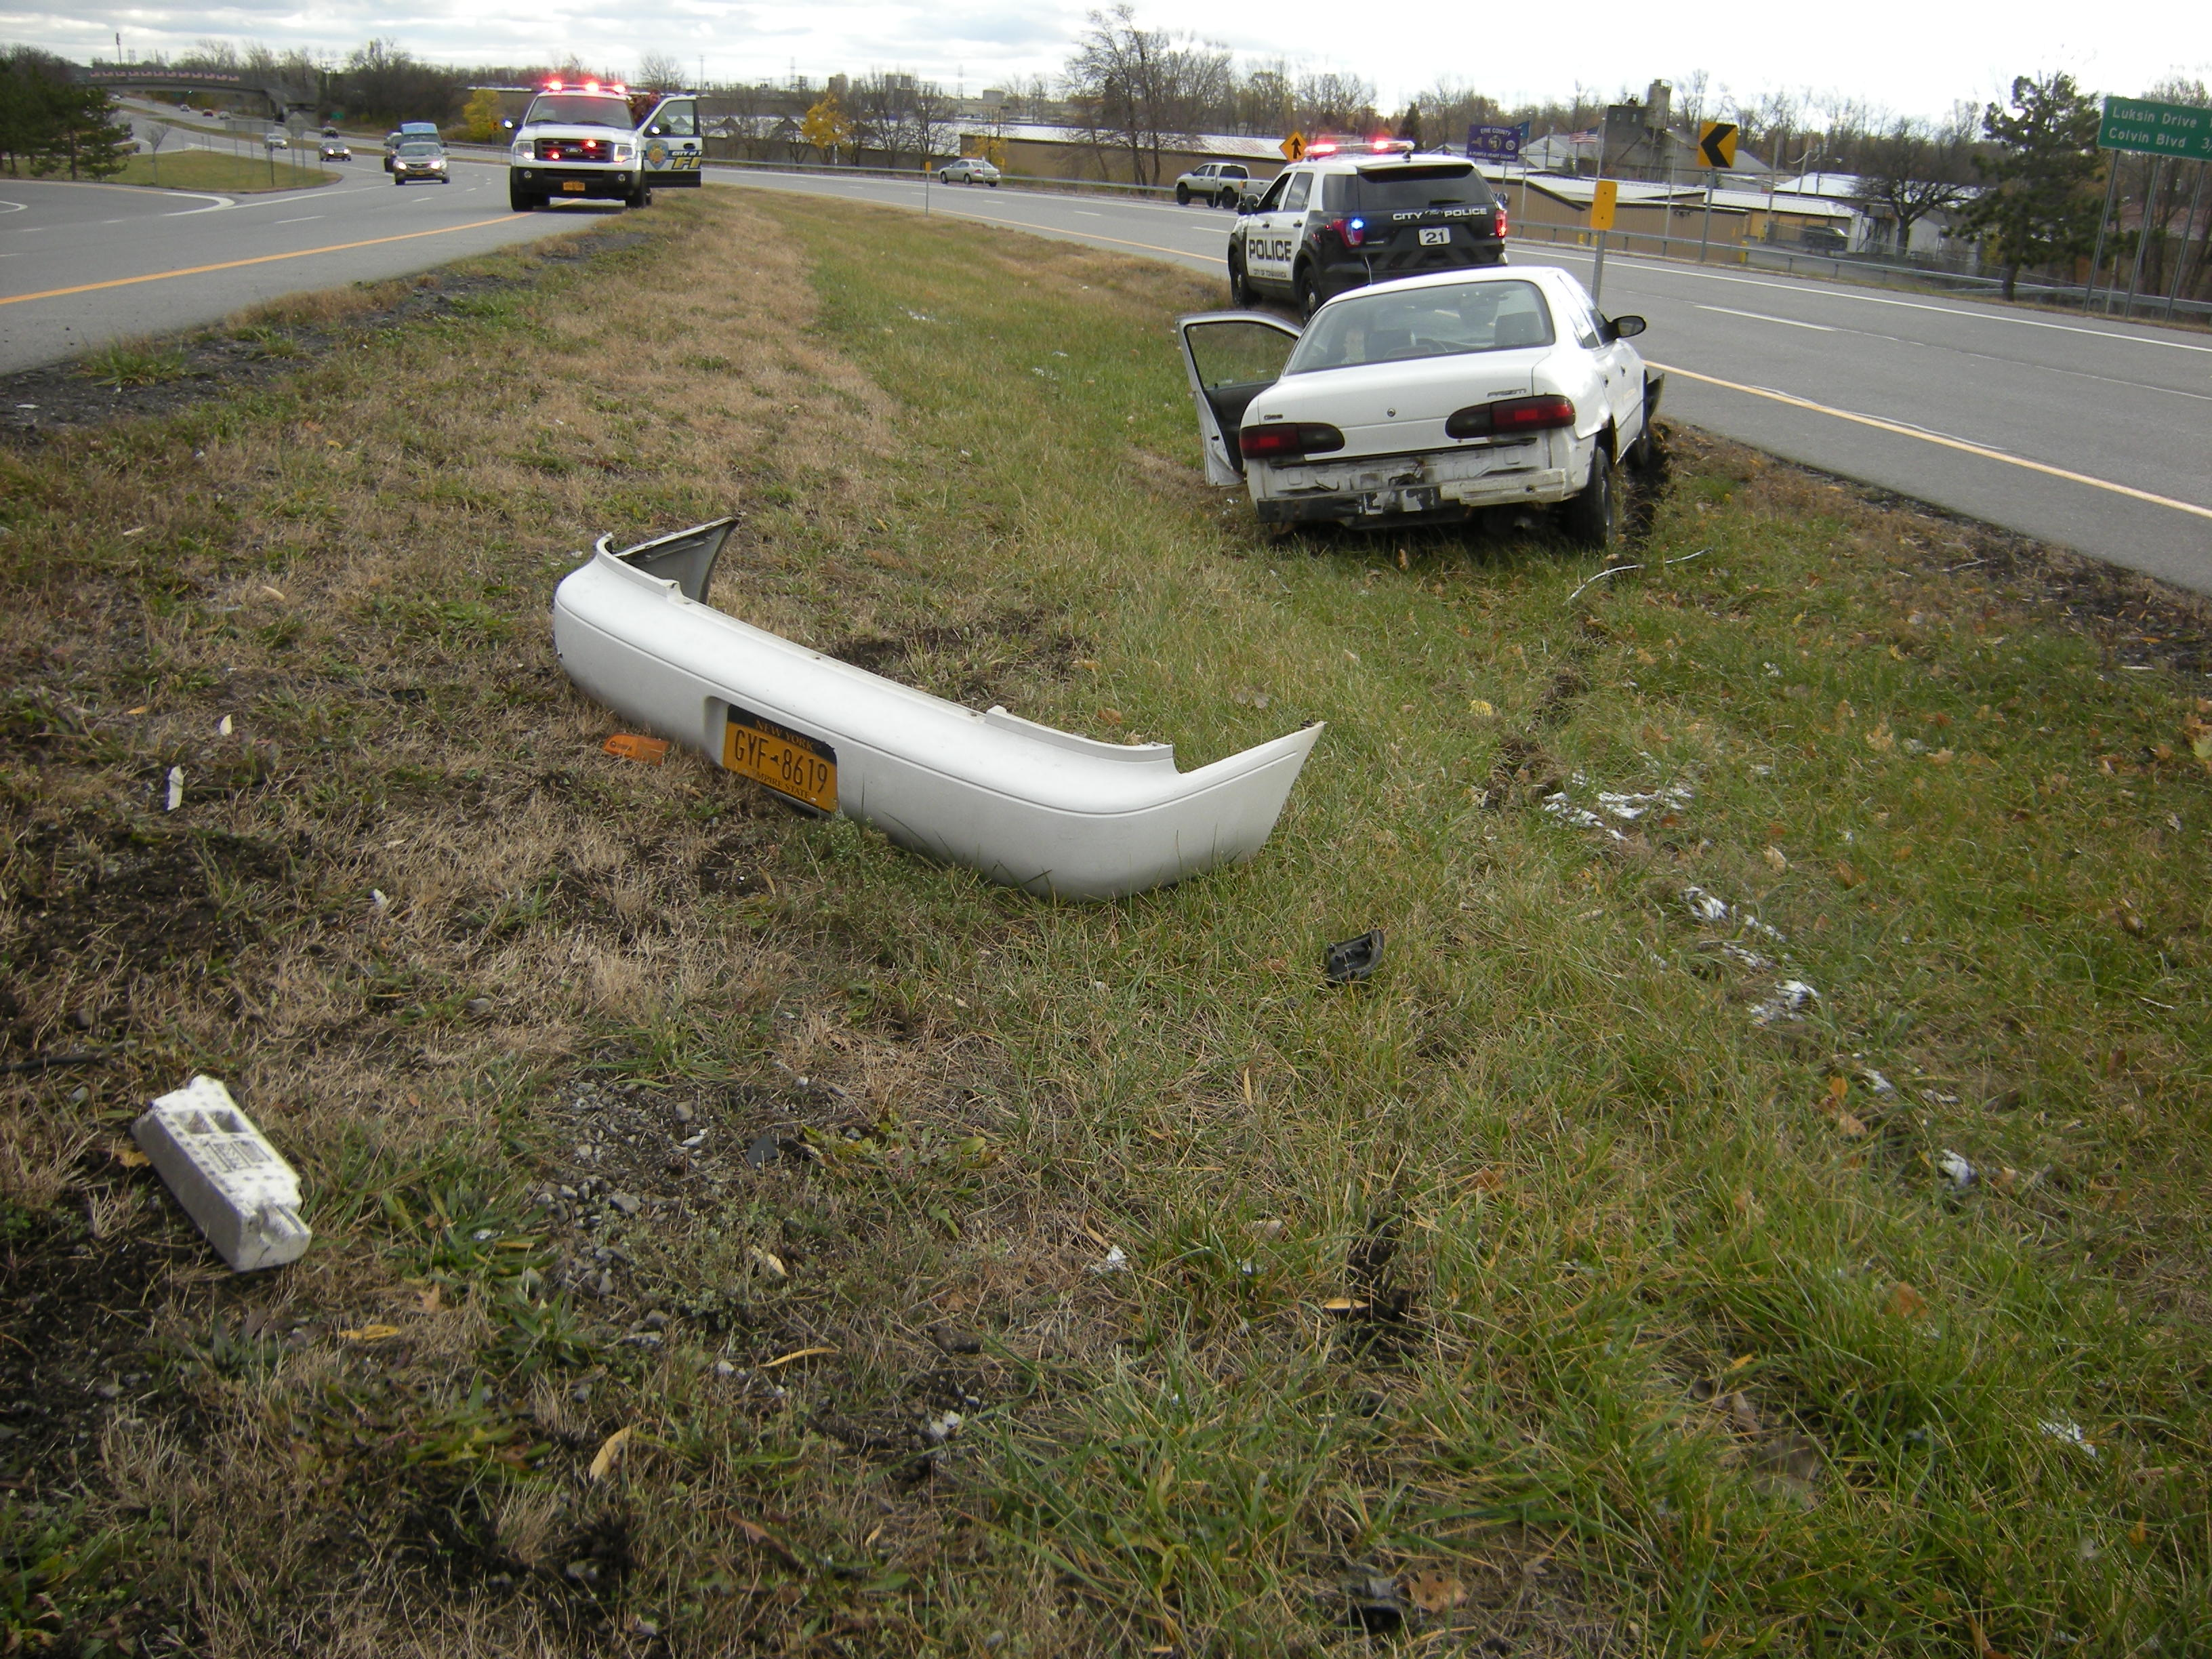 A crash Monday afternoon on the Twin City Memorial Highway resulted from a driver's coughing spell, he told police. (City of Tonawanda police)